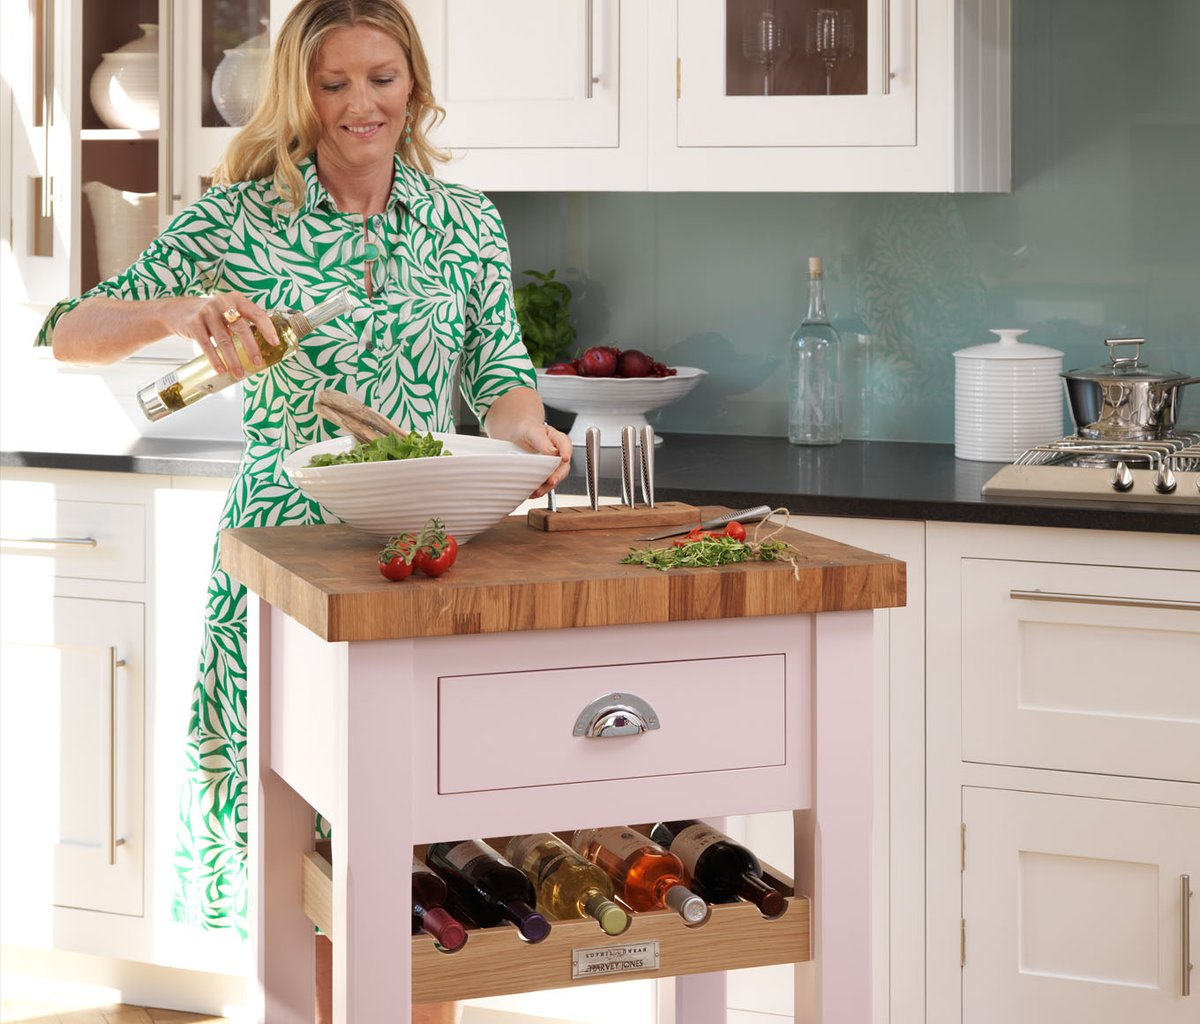 Your kitchen as when you need it http www harveyjones com our kitchens extras the cooks companion by sophie conran pic twitter com utve6e48k5